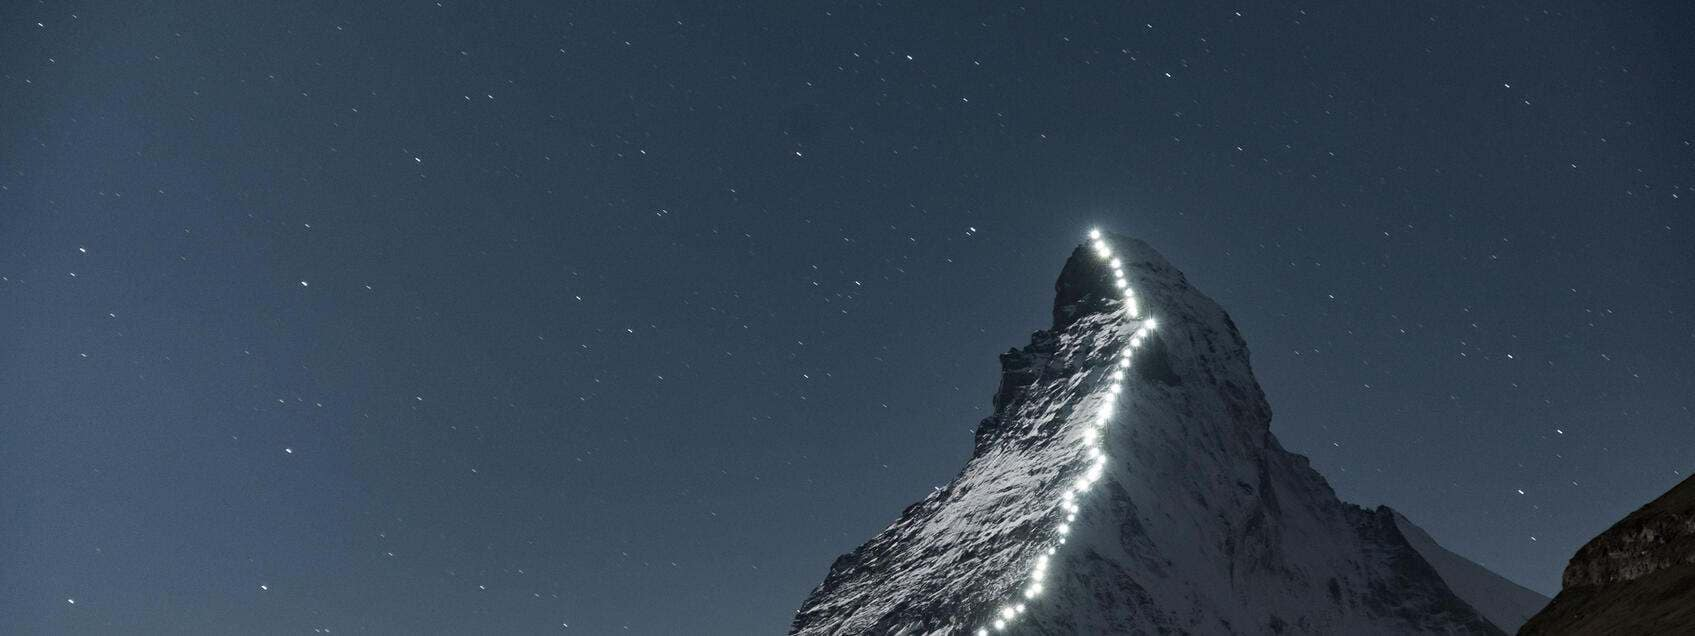 The Matterhorn mountain from Zermatt, Switzerland. Photographed at night, the lights are lanterns that follow the route the first explorers took to reach the peak.